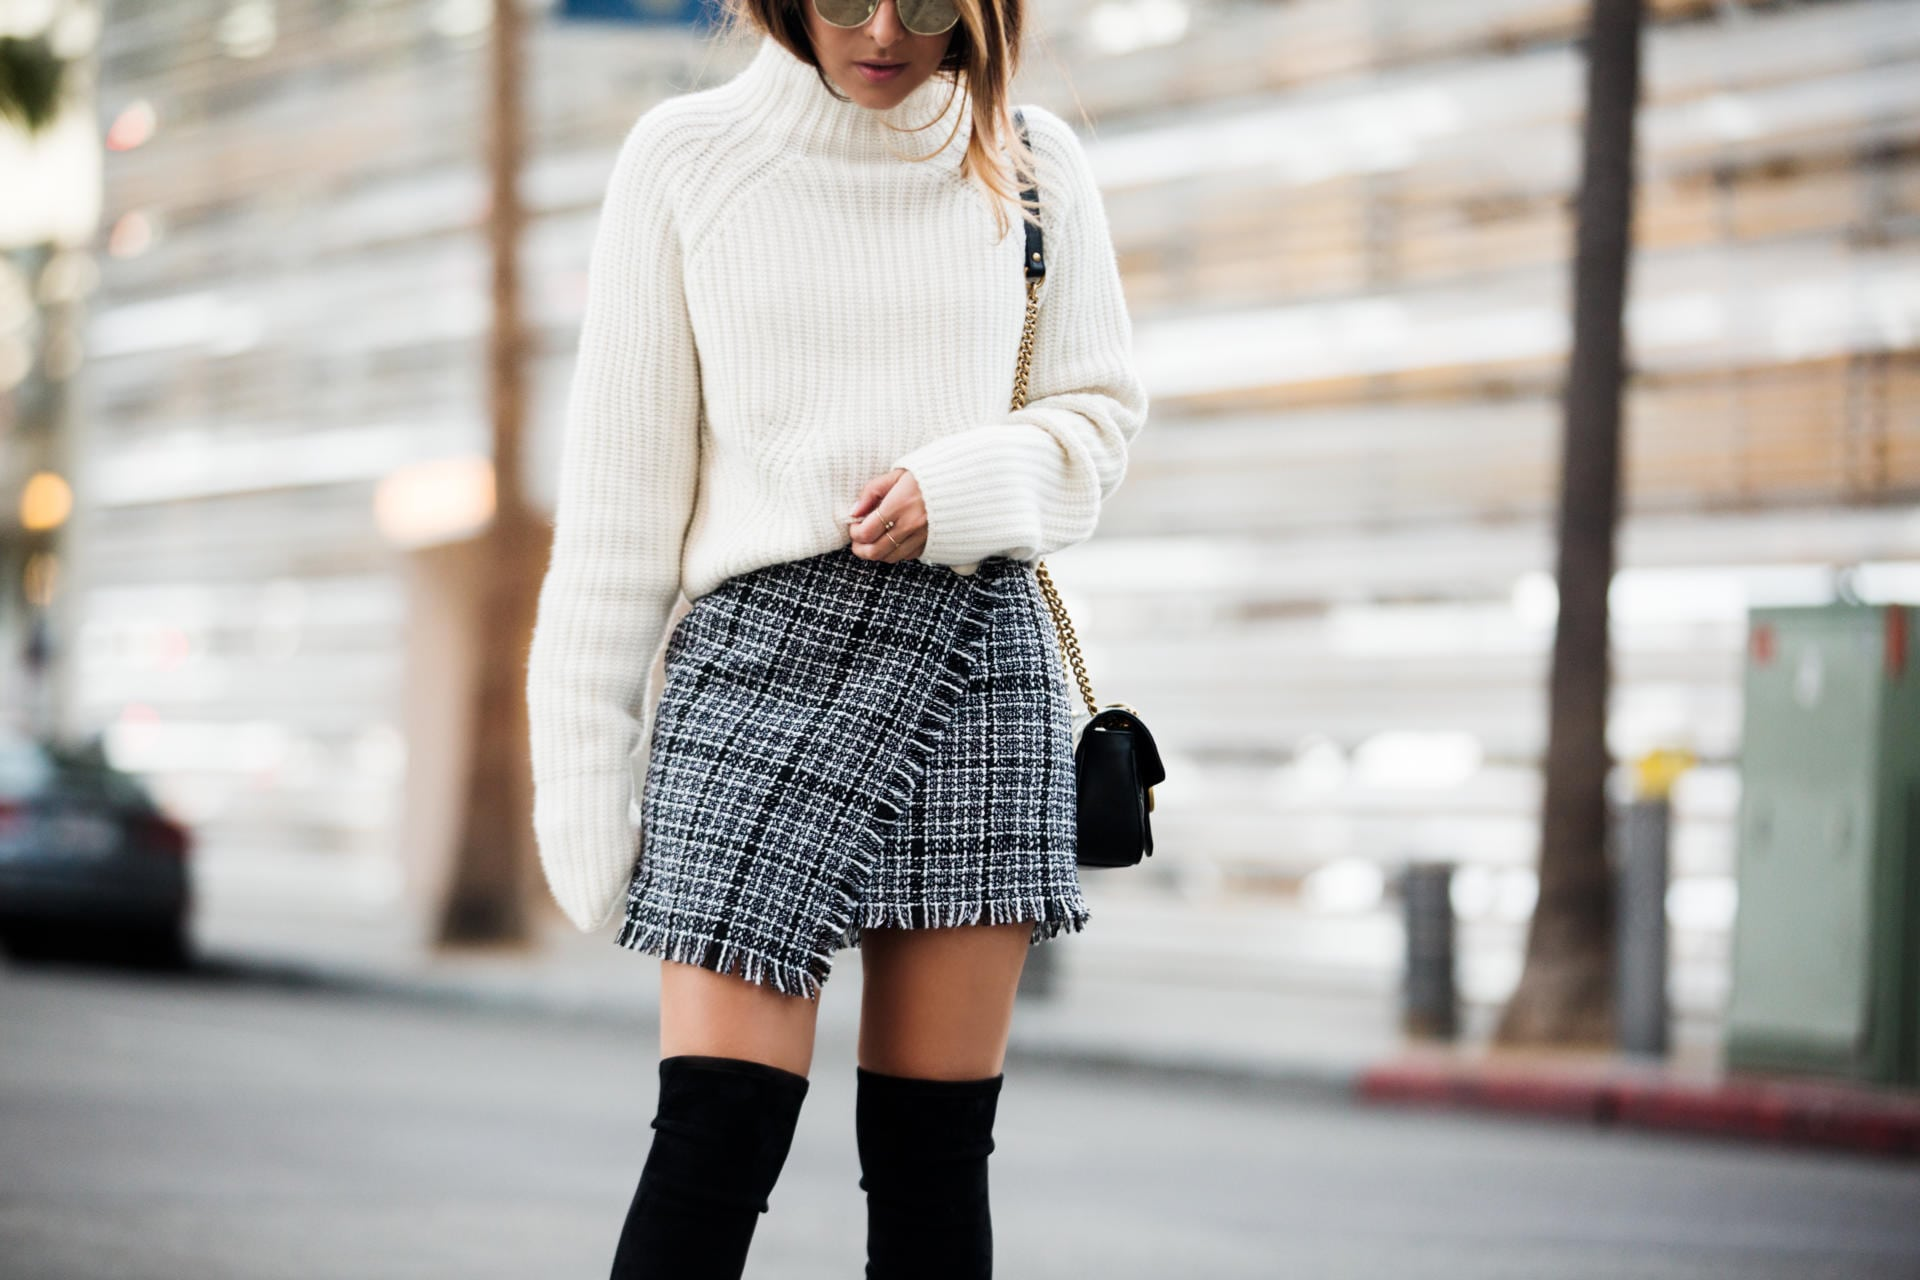 A Foolproof Way To Style A Tweed Skirt The Girl From Panama